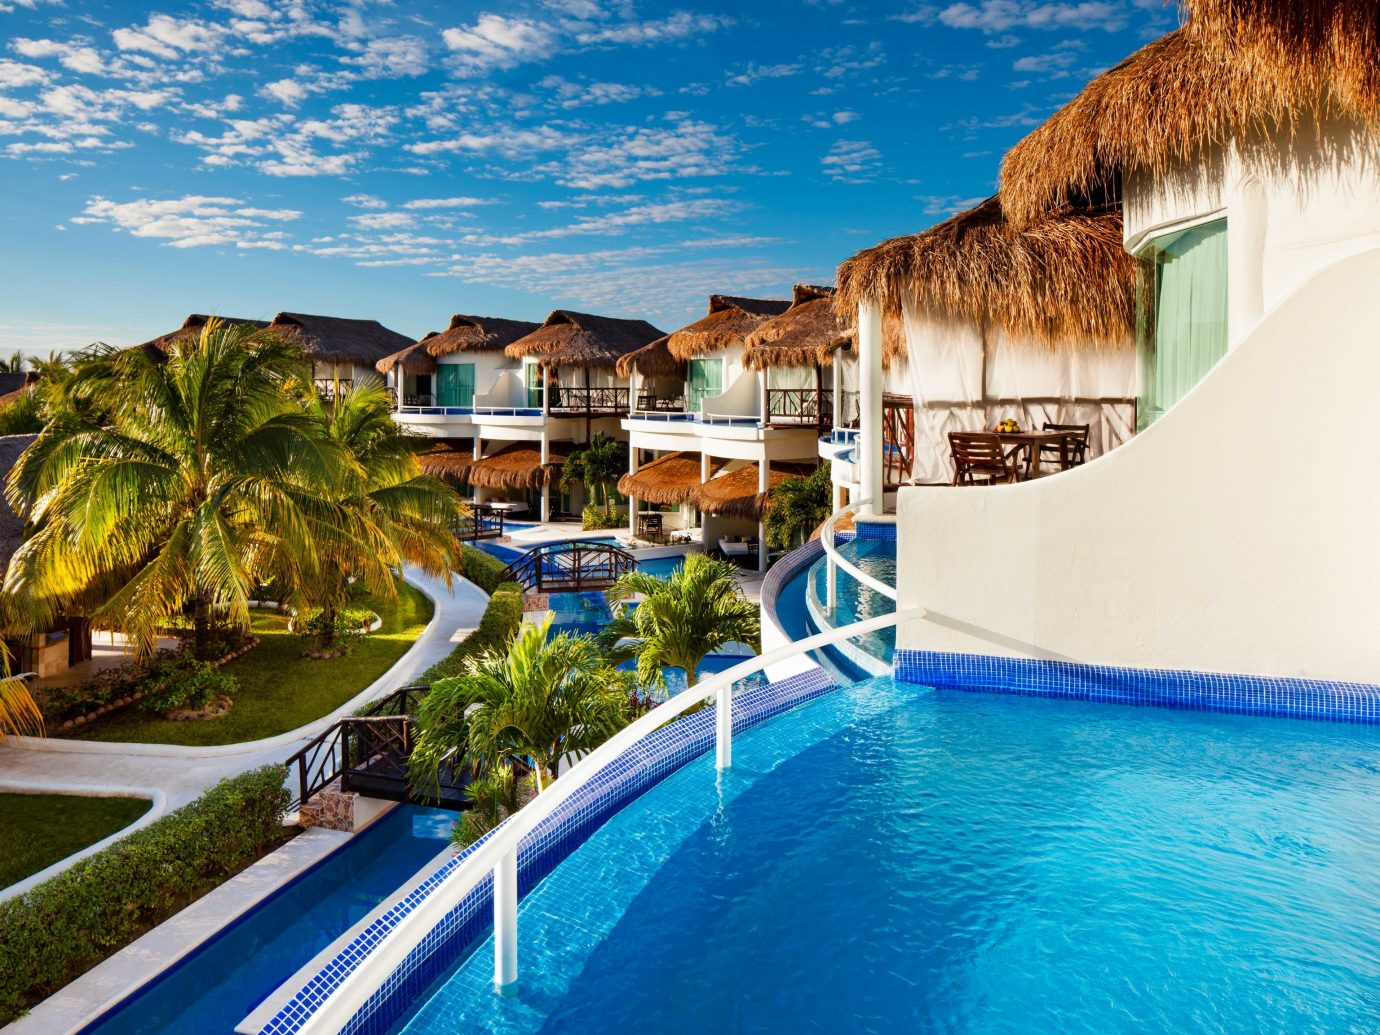 All-inclusive All-Inclusive Resorts Mexico Riviera Maya, Mexico Resort property swimming pool estate leisure real estate home resort town Villa hotel vacation caribbean hacienda palm tree mansion tourism arecales condominium house